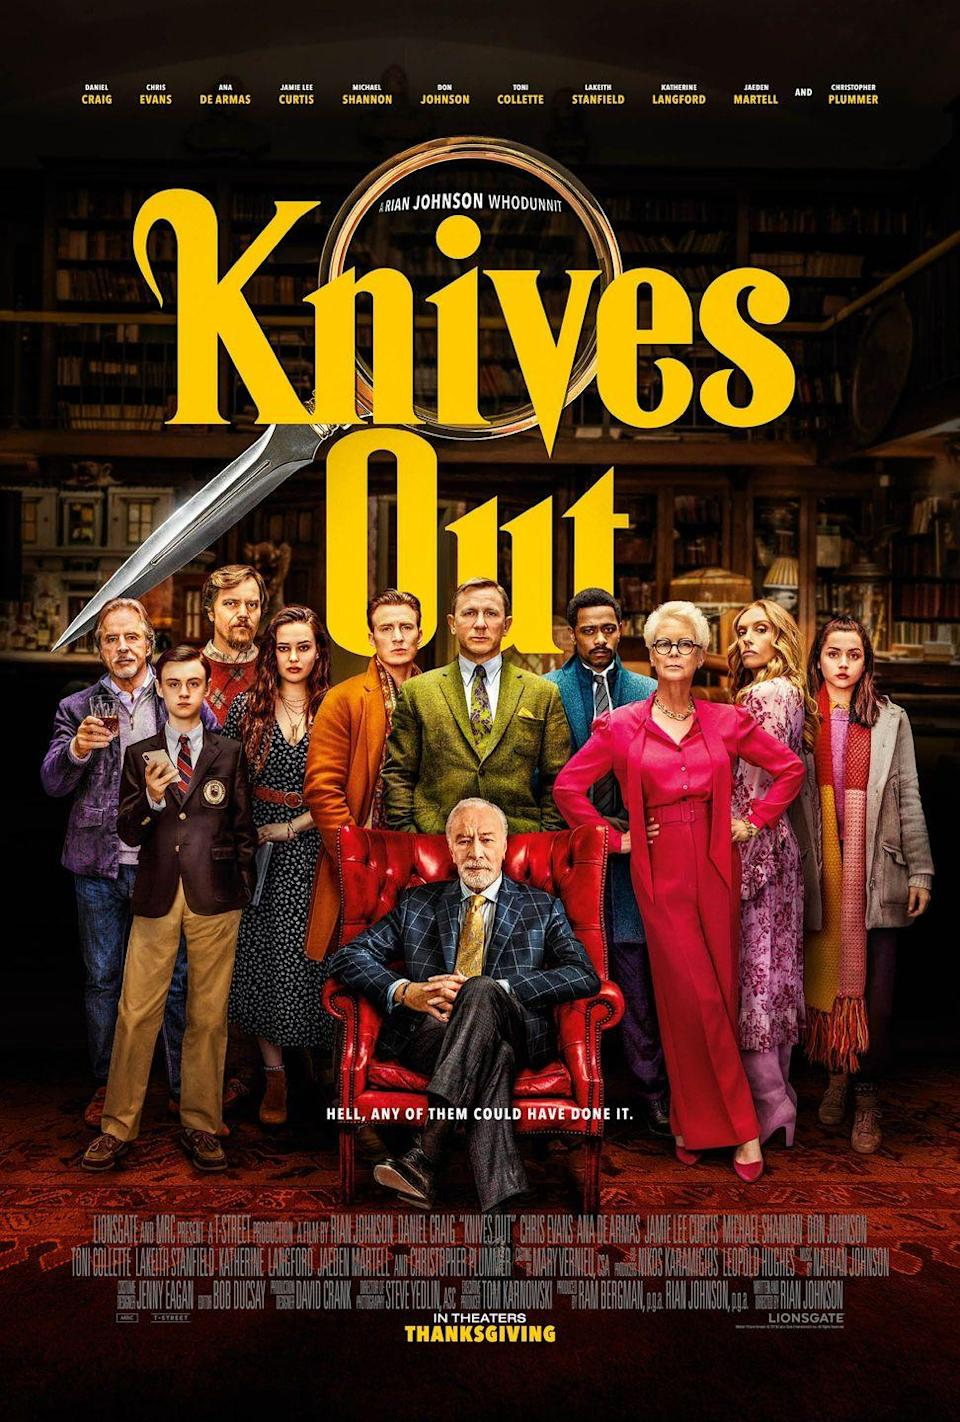 "<p>How could we forget one of the best modern murder mystery films in recent years? This 2019 blockbuster hit puts a modern spin on the classic murder mystery genre, featuring an all-star ensemble cast alongside a truly riveting plot involving an investigation of a family patriarch's death. </p><p><a class=""link rapid-noclick-resp"" href=""https://www.amazon.com/Knives-Out-Ana-Armas/dp/B081W544J7?tag=syn-yahoo-20&ascsubtag=%5Bartid%7C10055.g.34396232%5Bsrc%7Cyahoo-us"" rel=""nofollow noopener"" target=""_blank"" data-ylk=""slk:WATCH ON AMAZON"">WATCH ON AMAZON</a></p>"